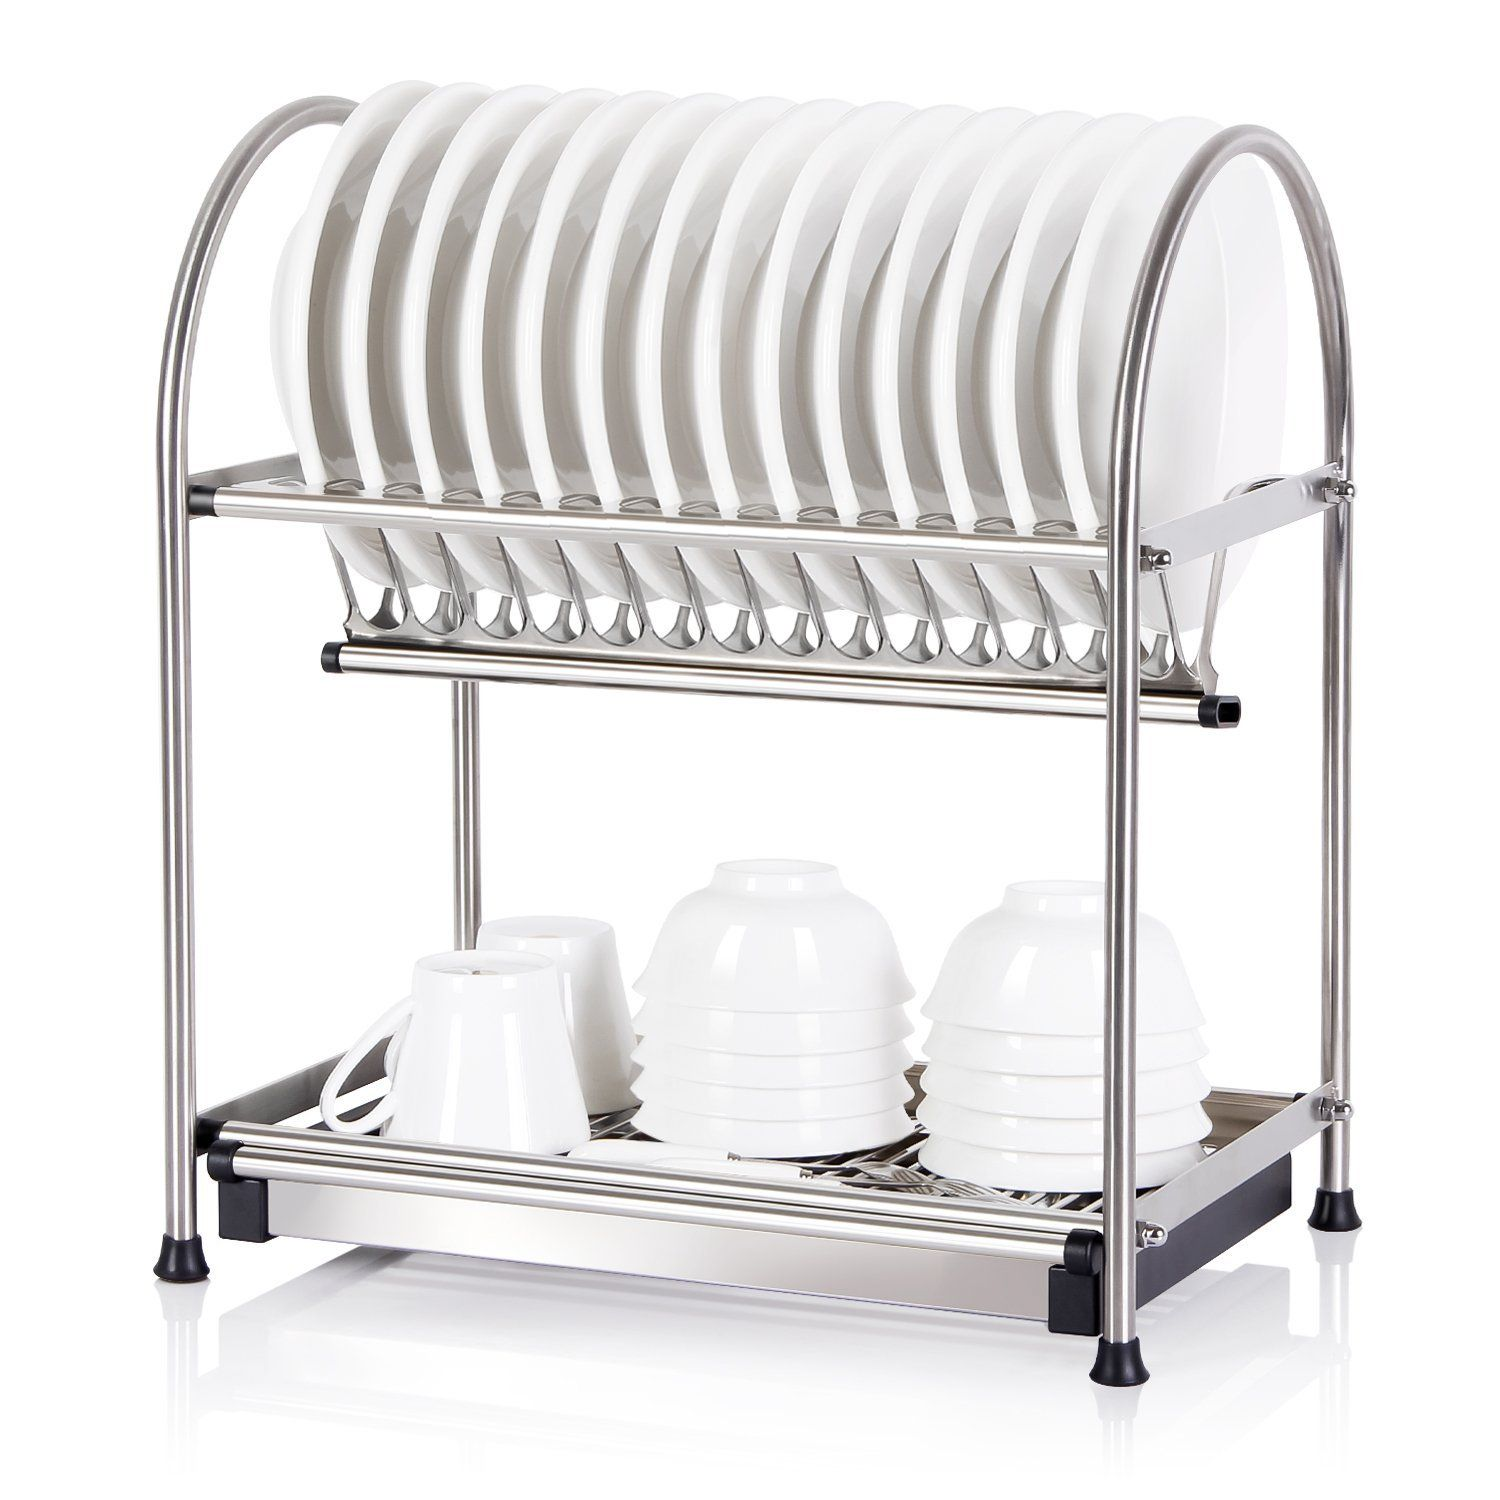 Lifewit Over The Sink 2 Tier Dish Drainer Drying Rack Holder, Kitchen Plate